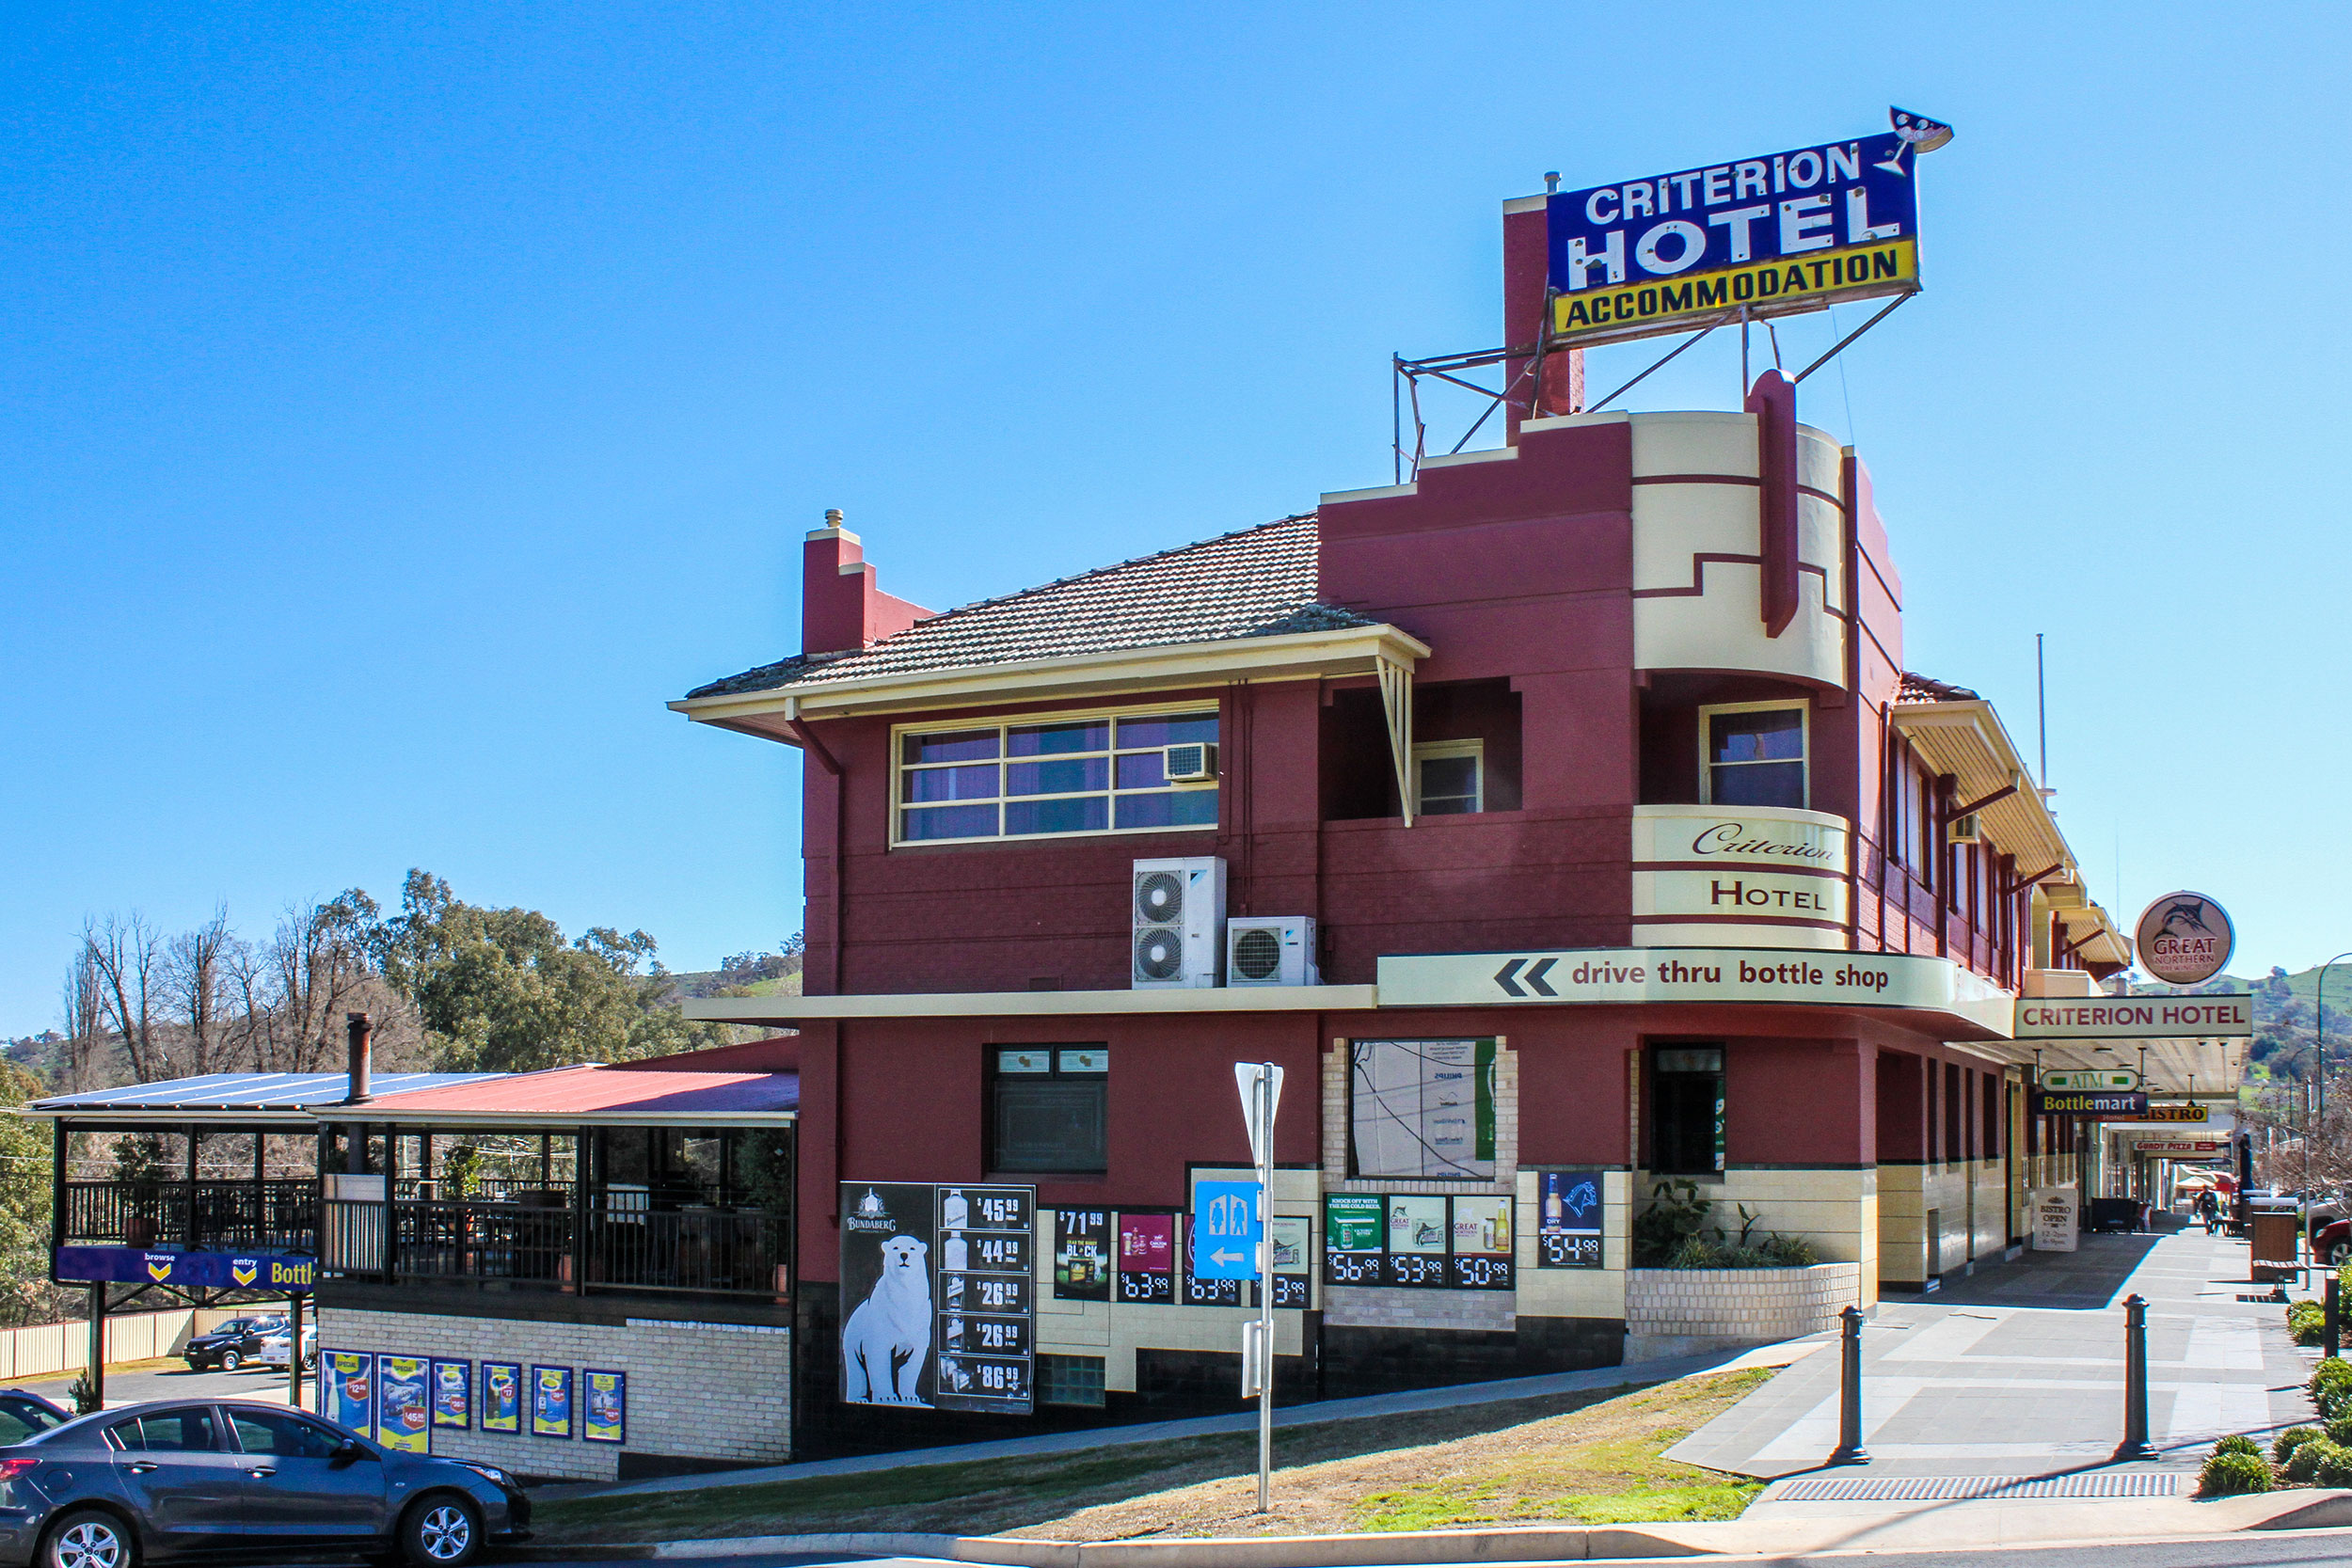 Name : Criterion Hotel - Gundagai, NSW